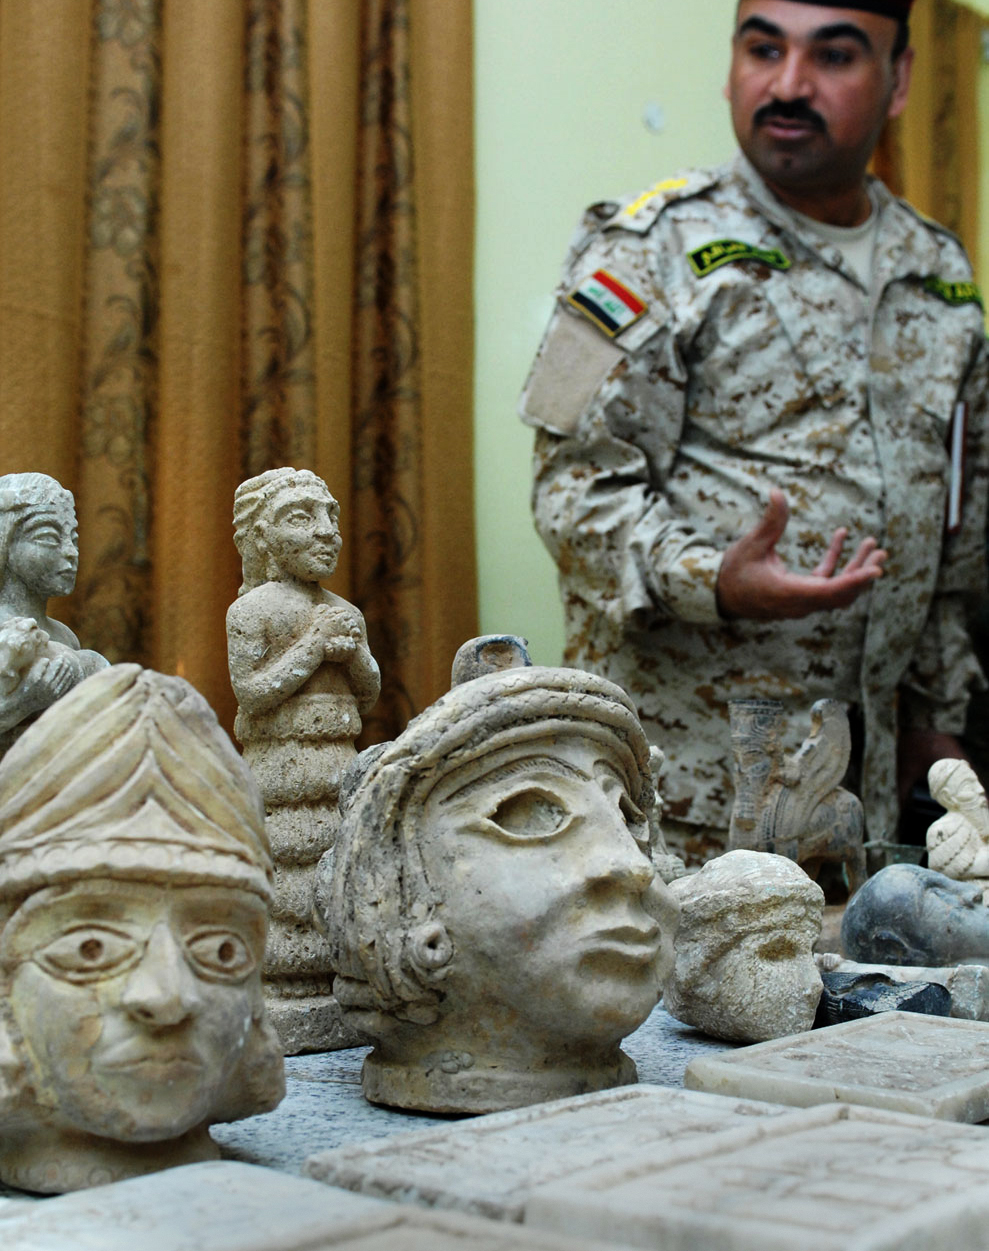 Iraqi Col. Ali Sabah, commander of the Basra Emergency Battalion, displays ancient artifacts Iraqi Security Forces discovered Dec. 16, 2008, during two raids in northern Basra. (U.S. Army Photo/Wikimedia)